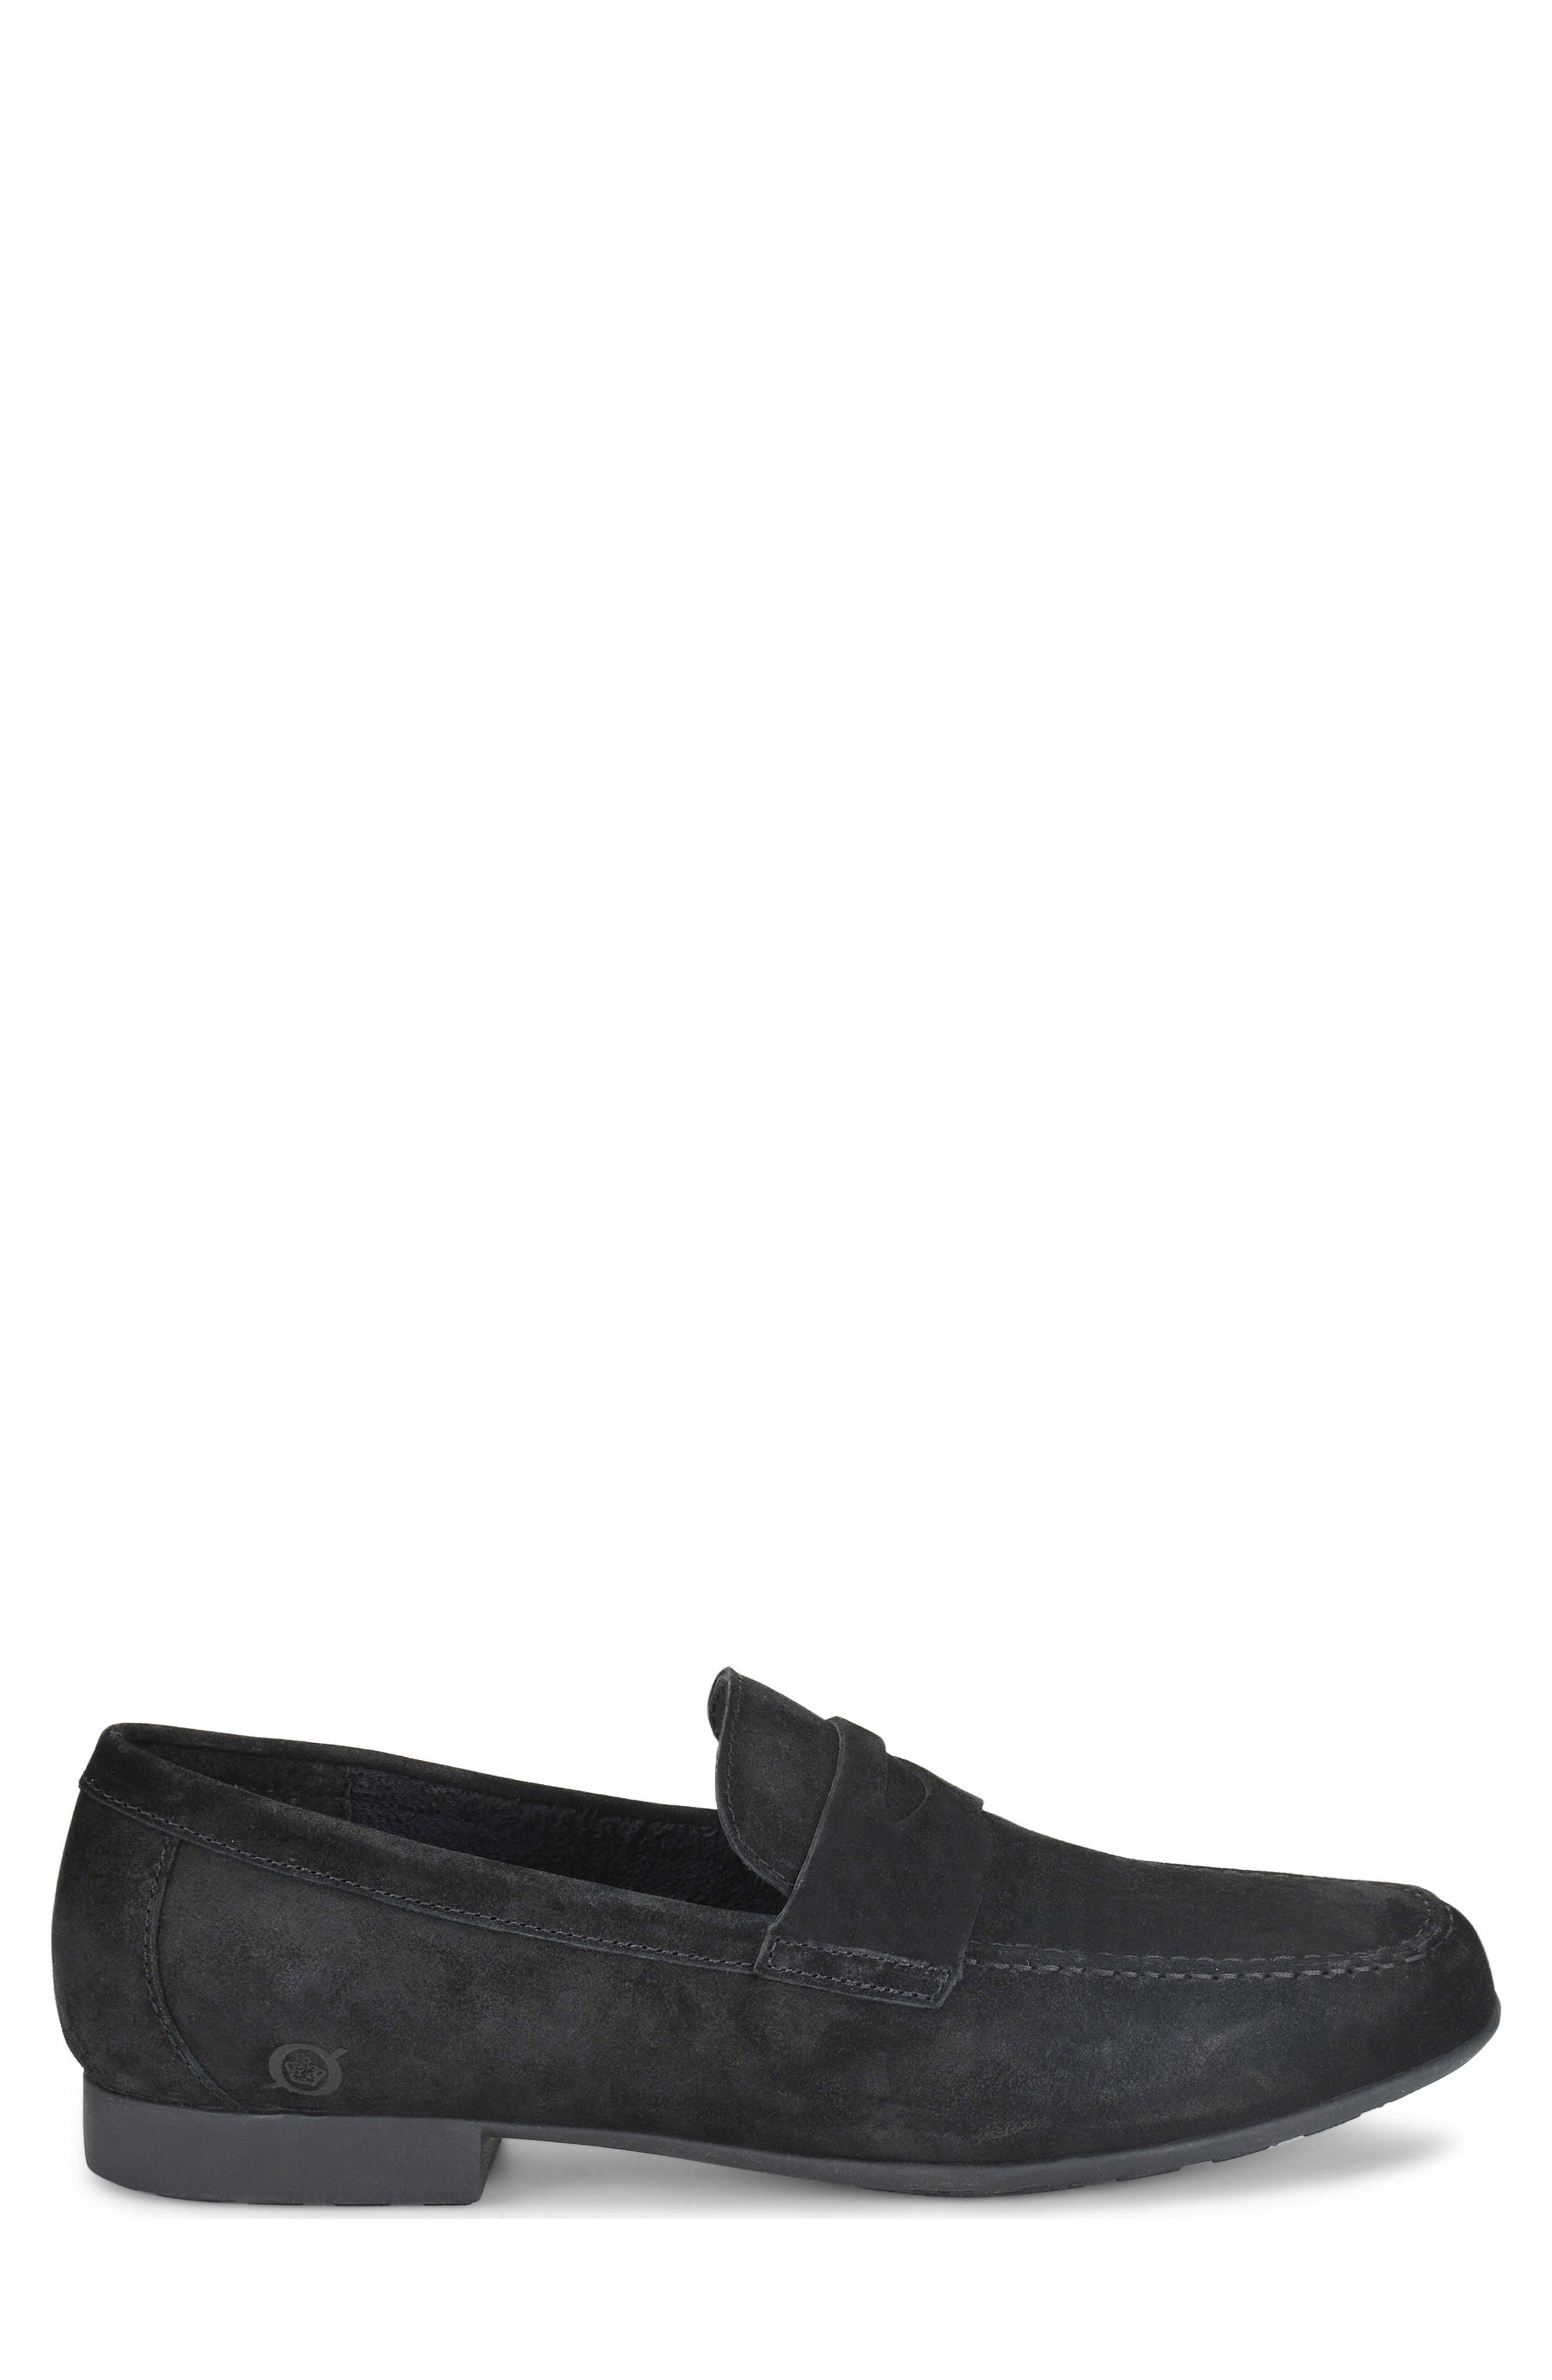 'Dave' Penny Loafer,                             Alternate thumbnail 3, color,                             003